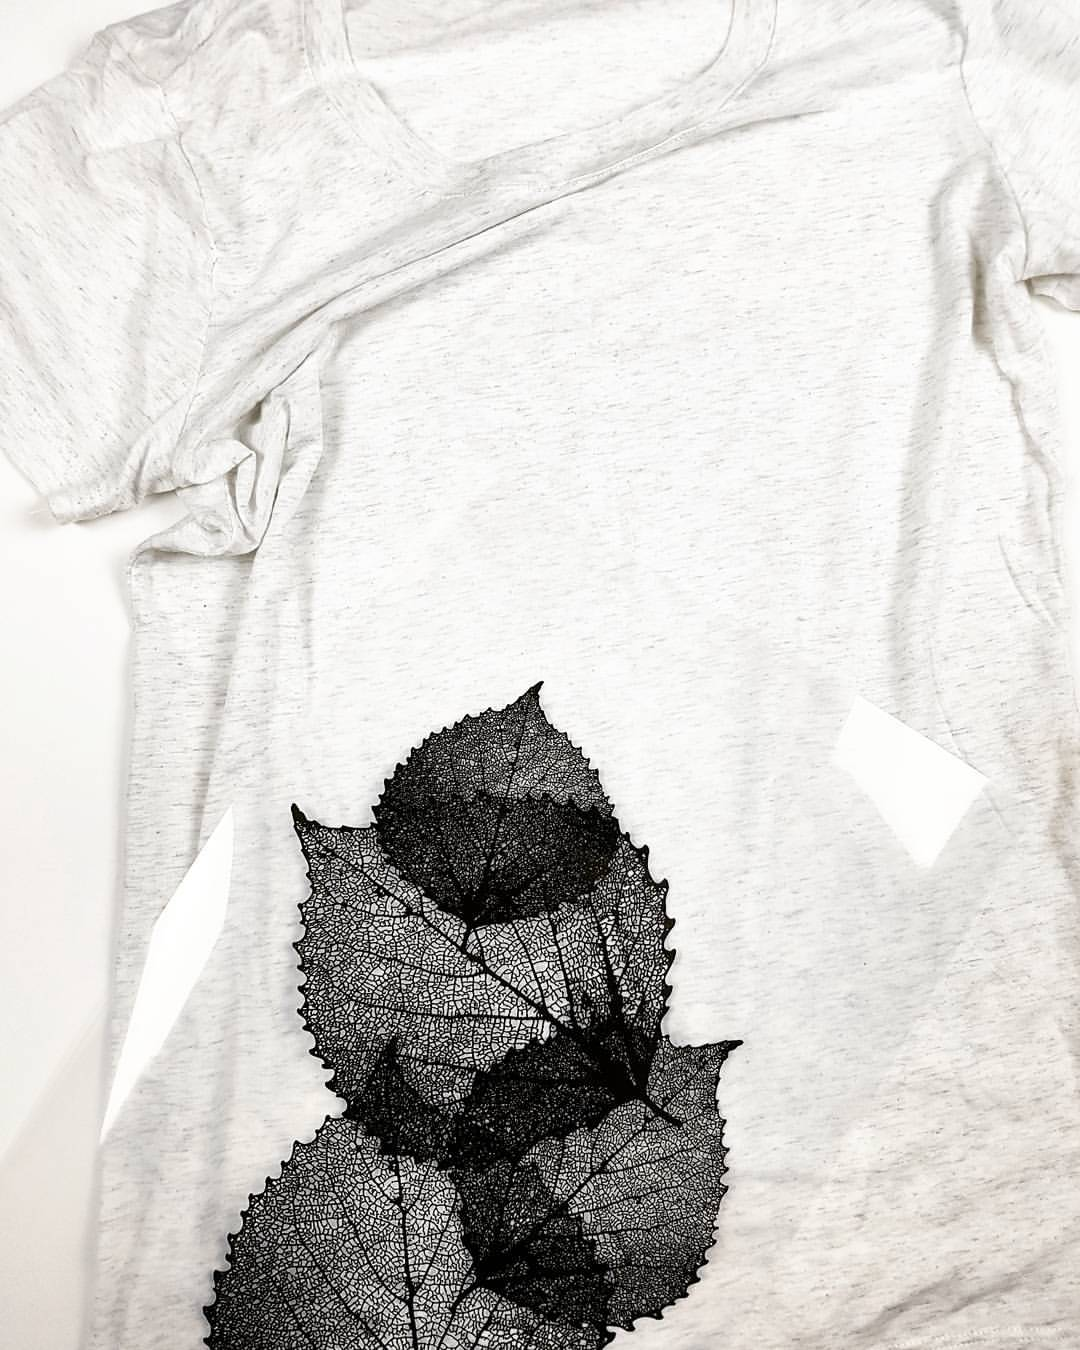 Women's shirt with transparency of leaves against it